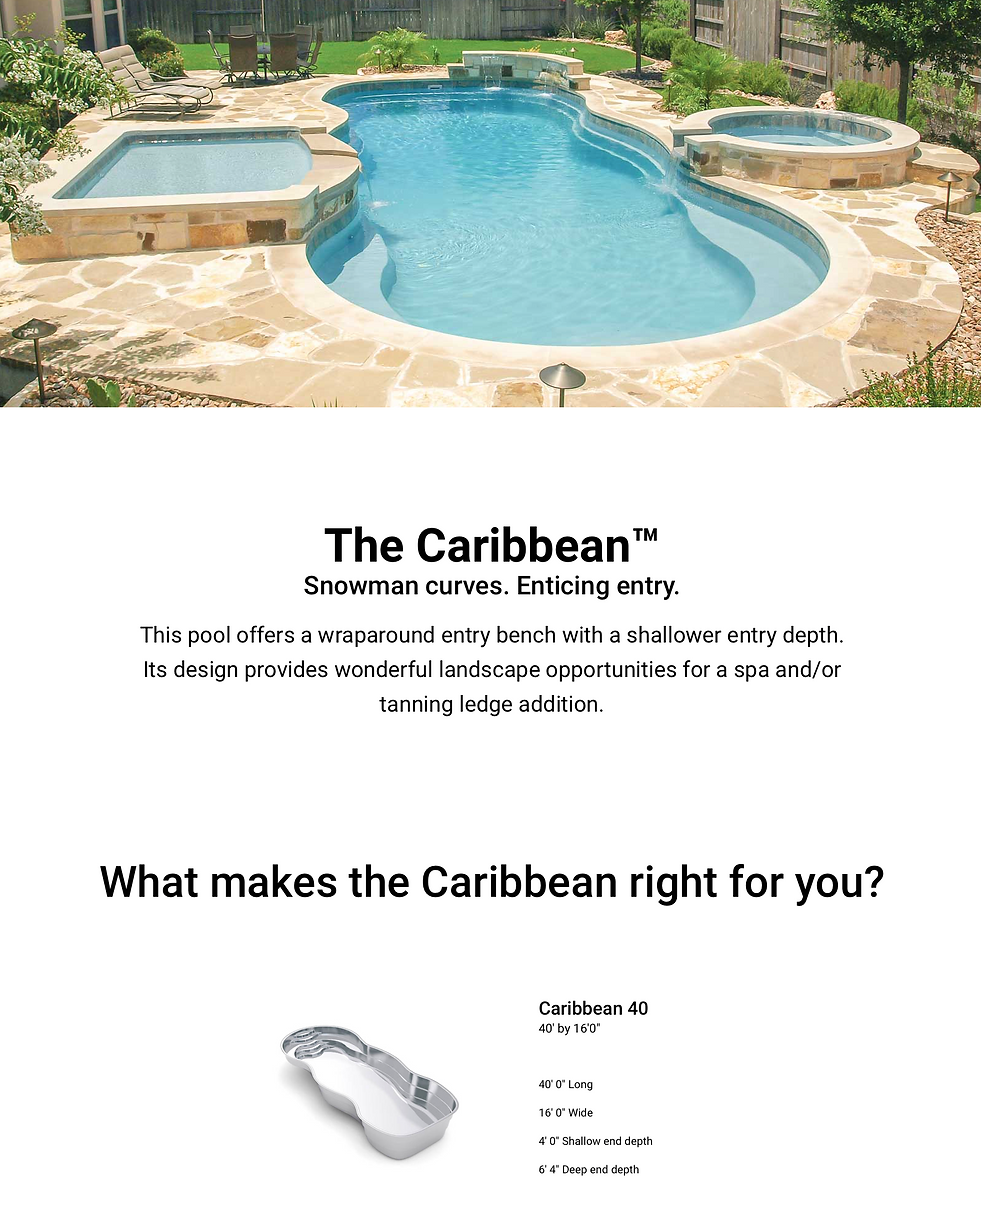 The Caribbean Design.png